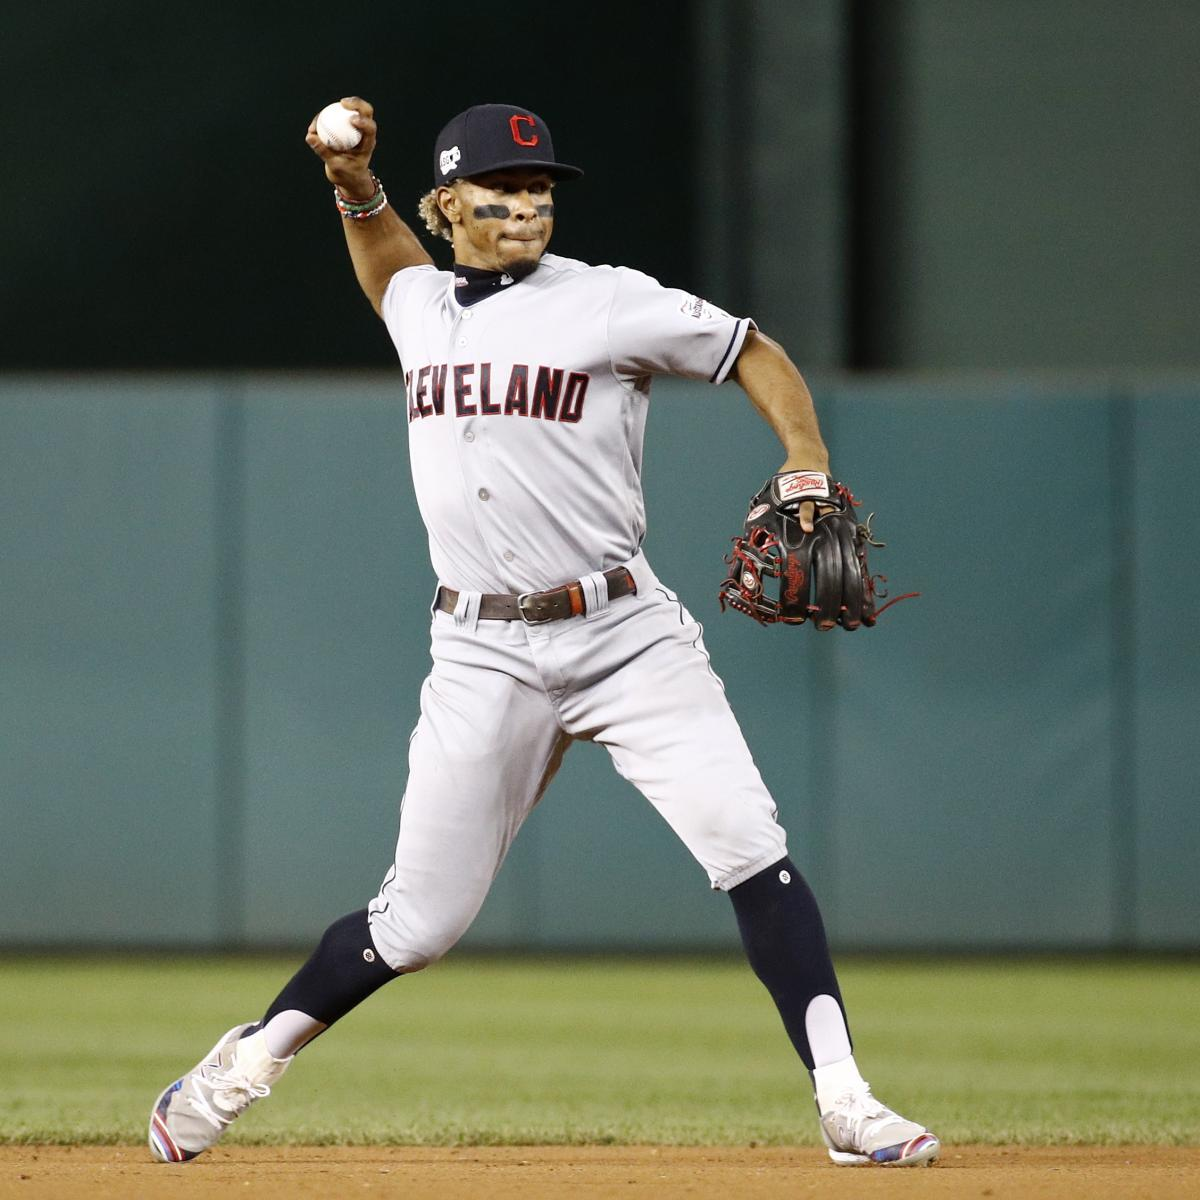 Indians' Francisco Lindor Says 'I Want to Stay in Cleveland' Amid Trade Rumors